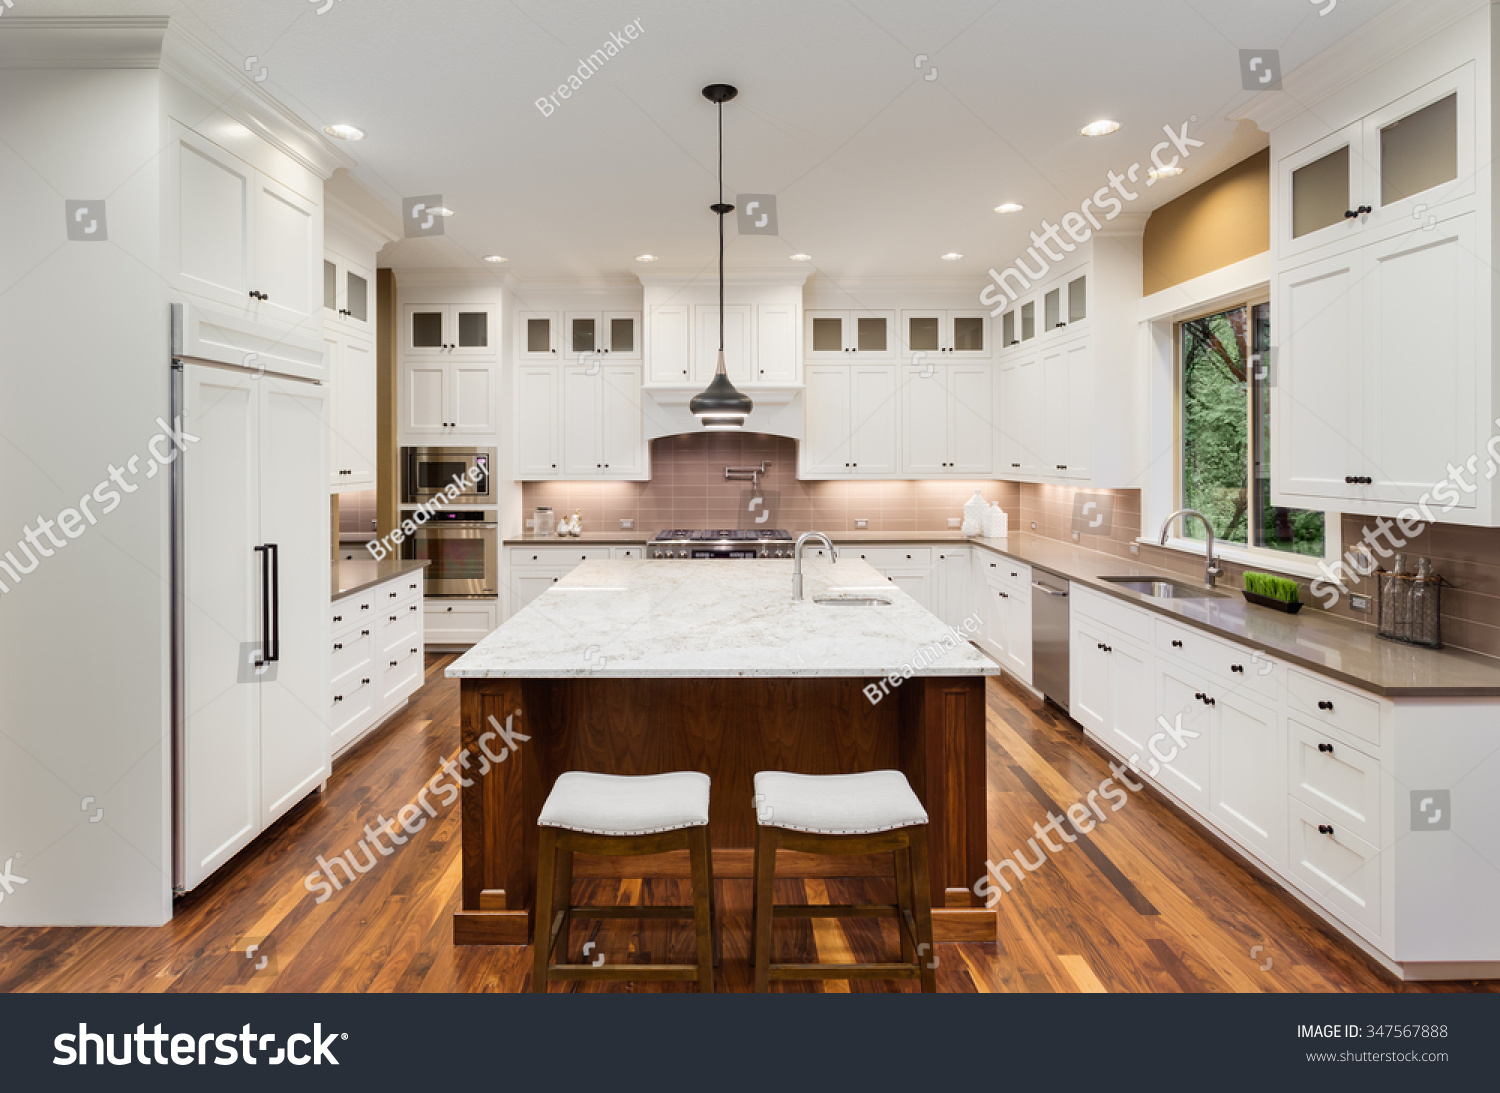 Large White Kitchen Sink : Large Kitchen Interior with Island, Sink, White Cabinets, Pendant ...